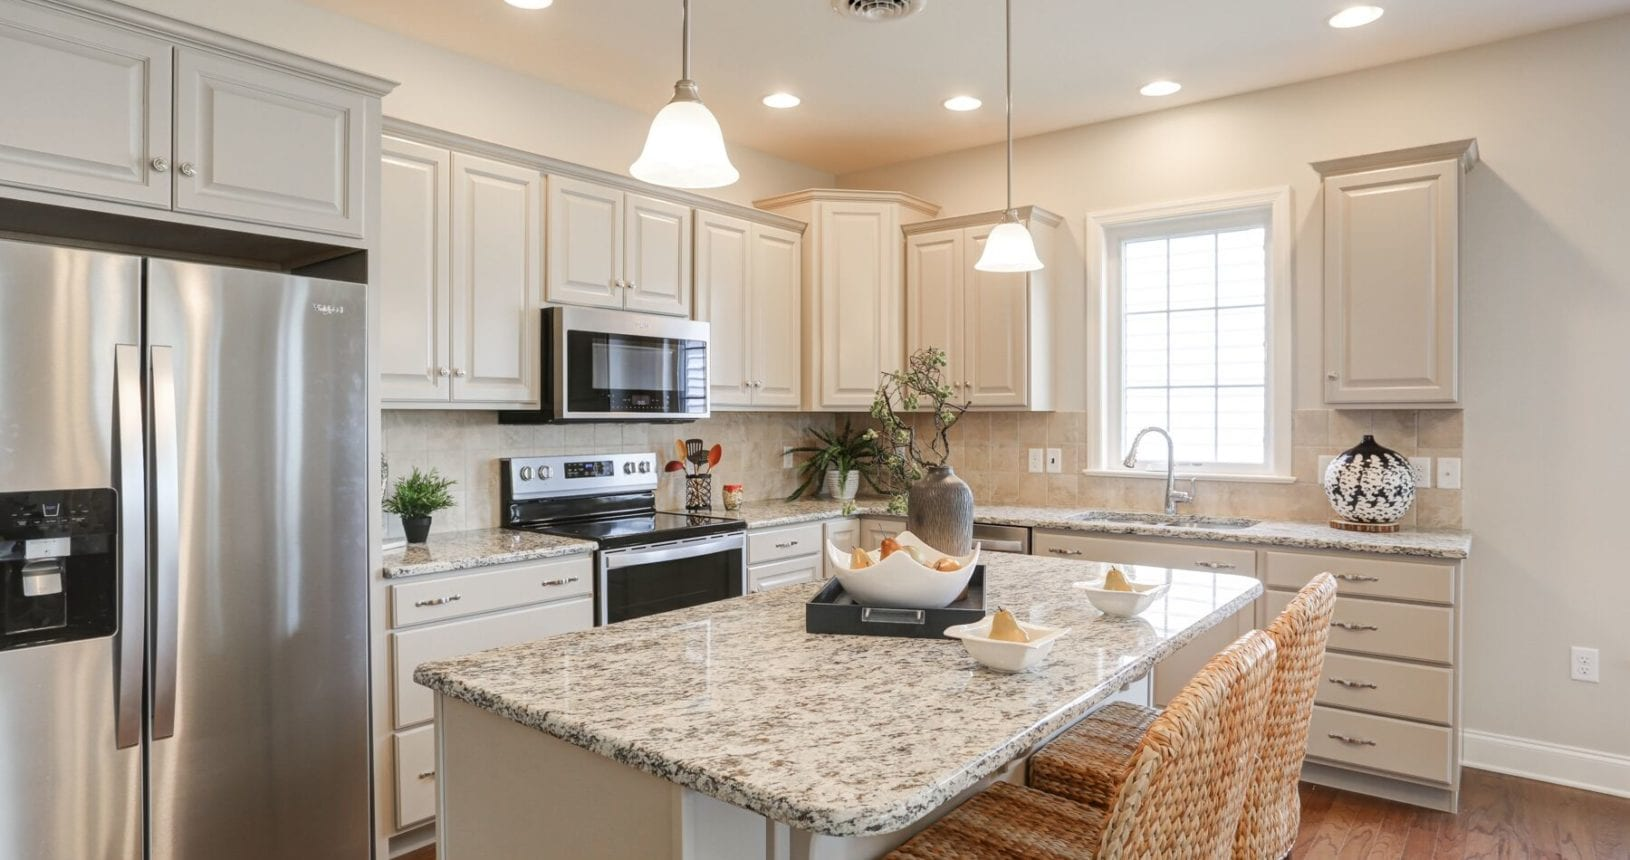 Kitchen in a staged model home at The Farmstead at Homestead Village